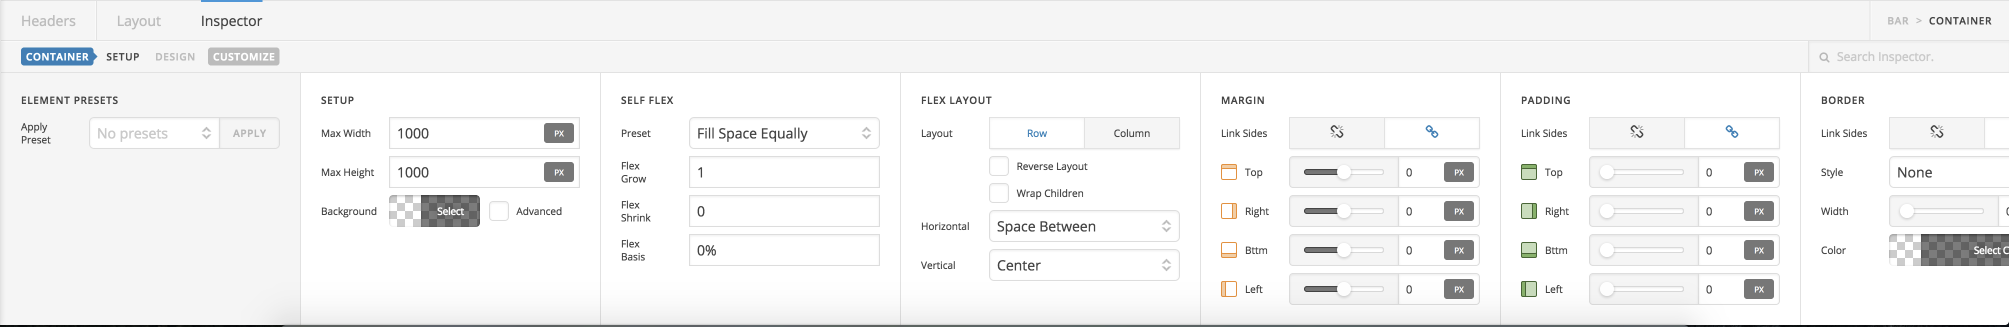 Header Builder Container Controls